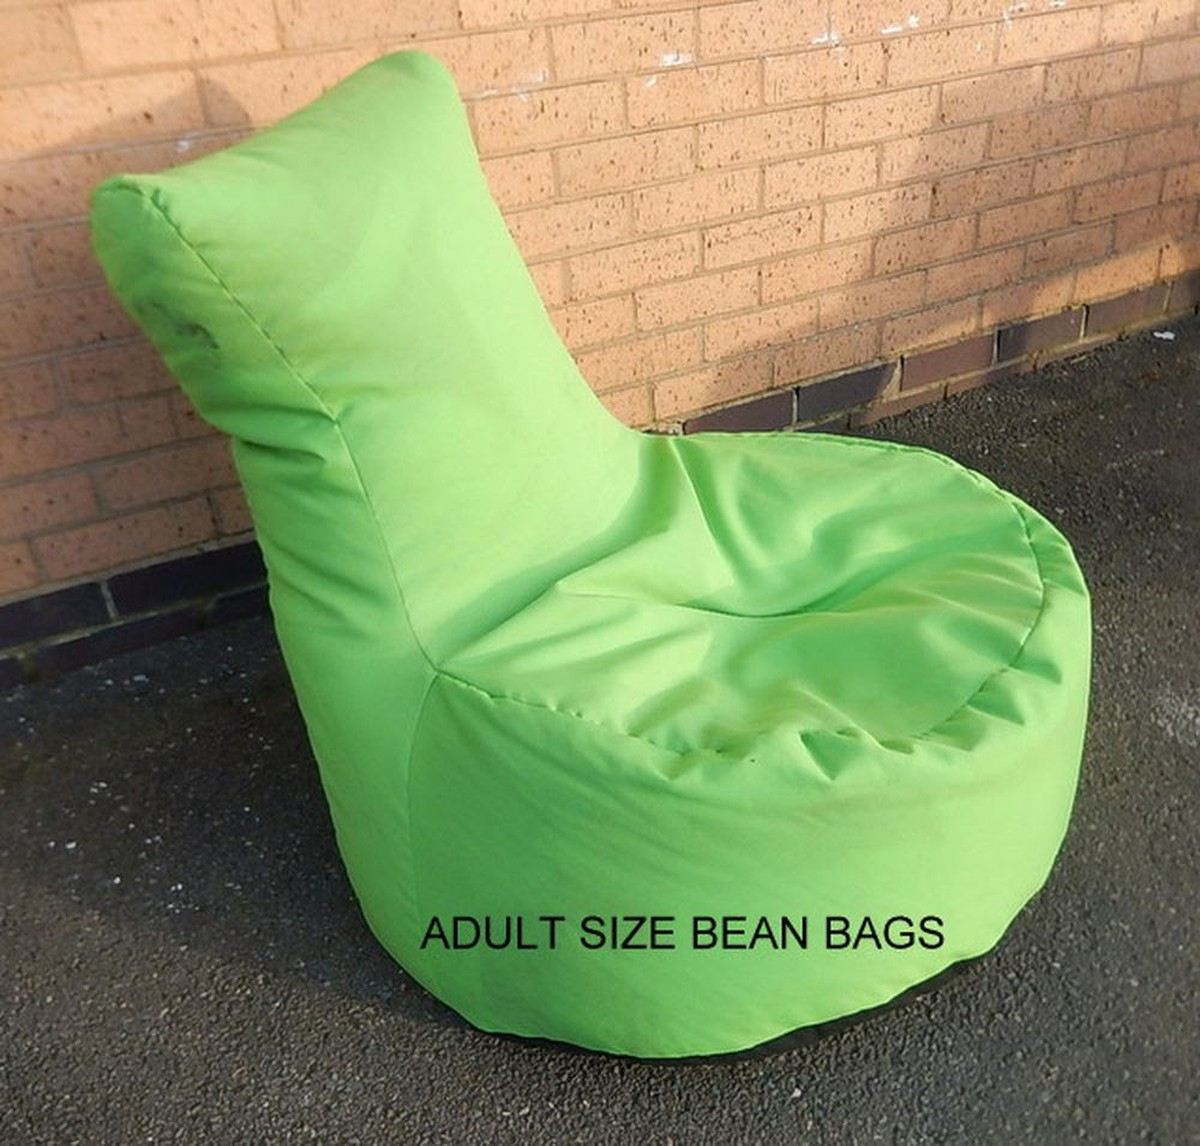 Adult Size Bean Bag Chair Secondhand Chairs And Tables Home Furniture 10x Adult Size